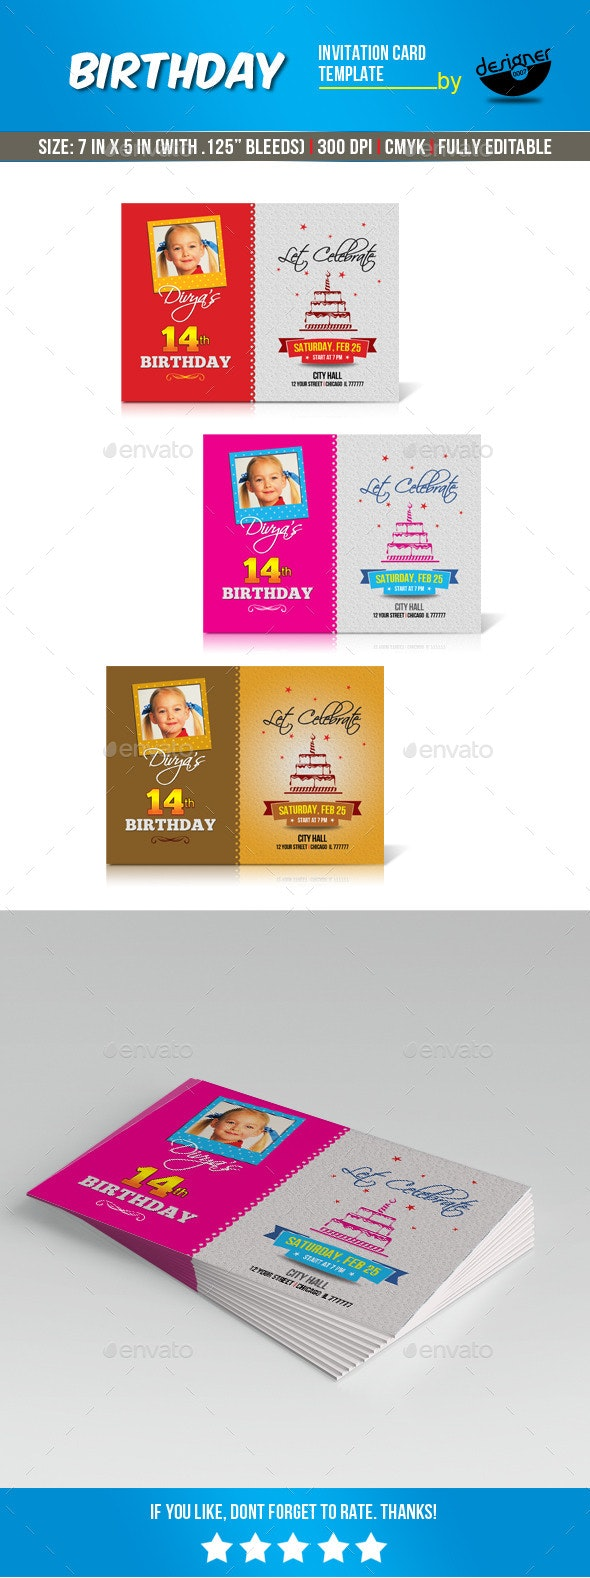 Birthday Invitation Card Template - Print Templates